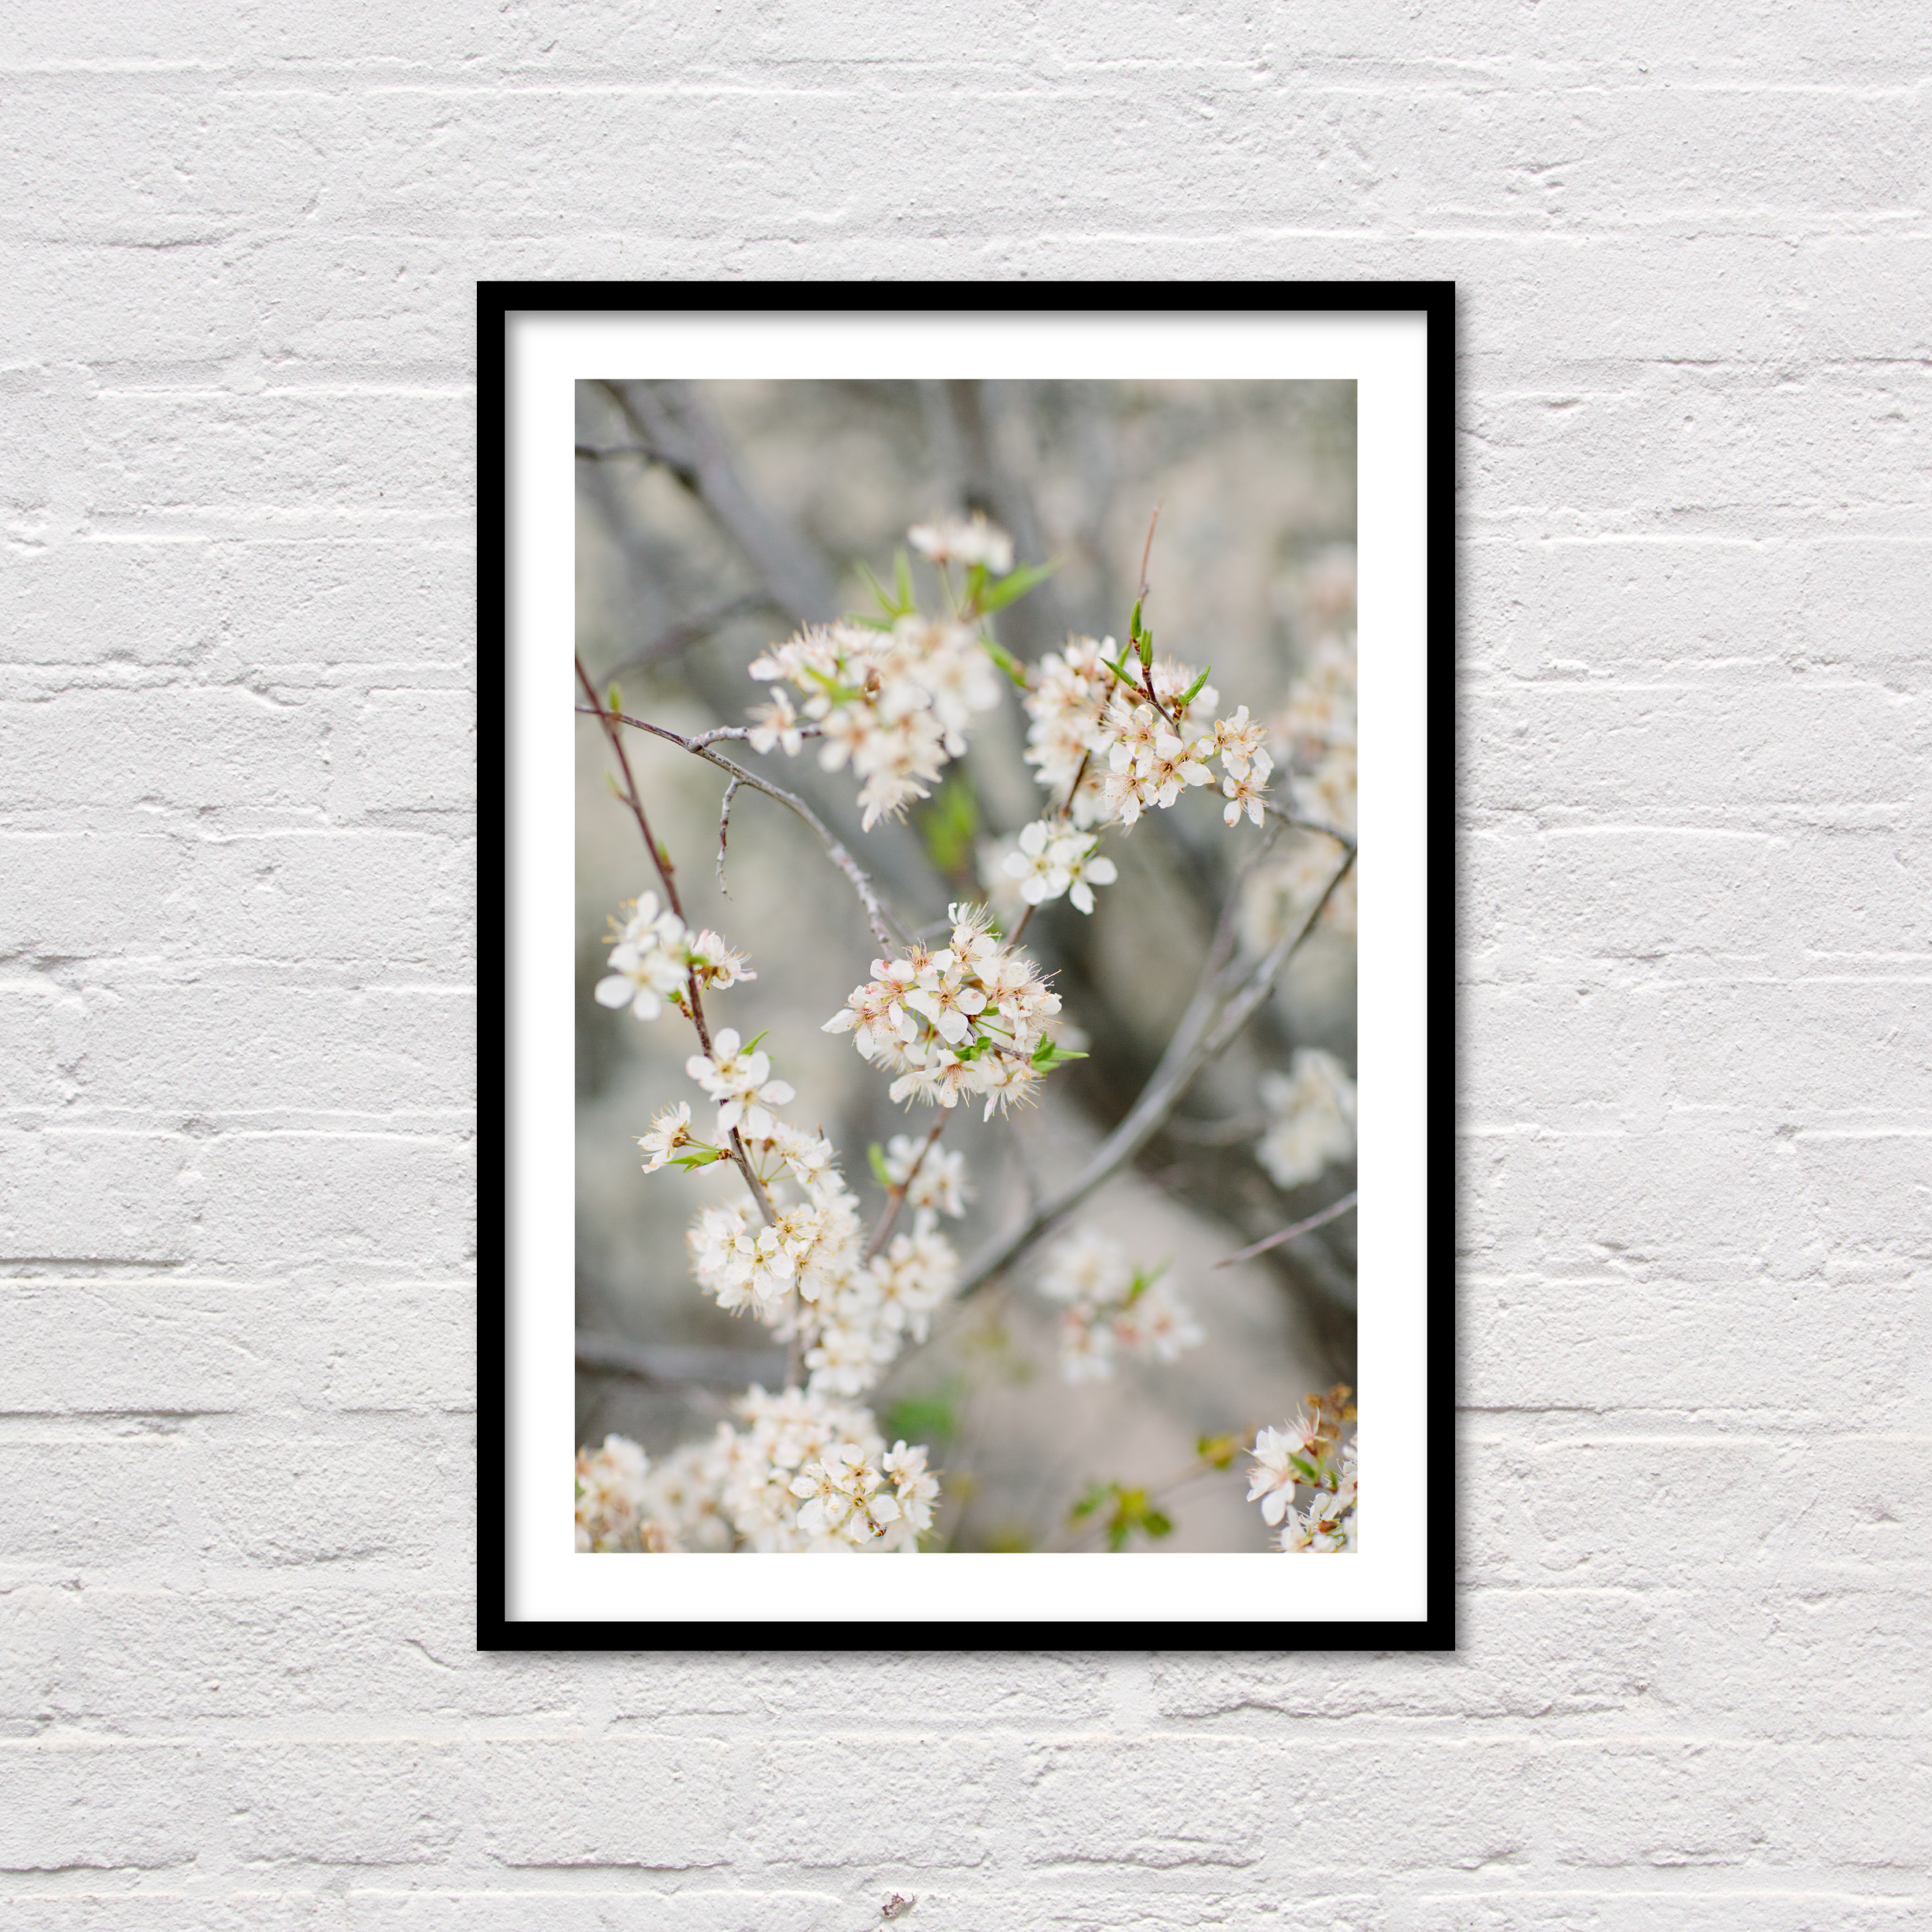 Spring Floral Print, Blossoms, Printable Wall Art, Minimalist Floral Printable, White & Grey Modern Art, Flower Photography